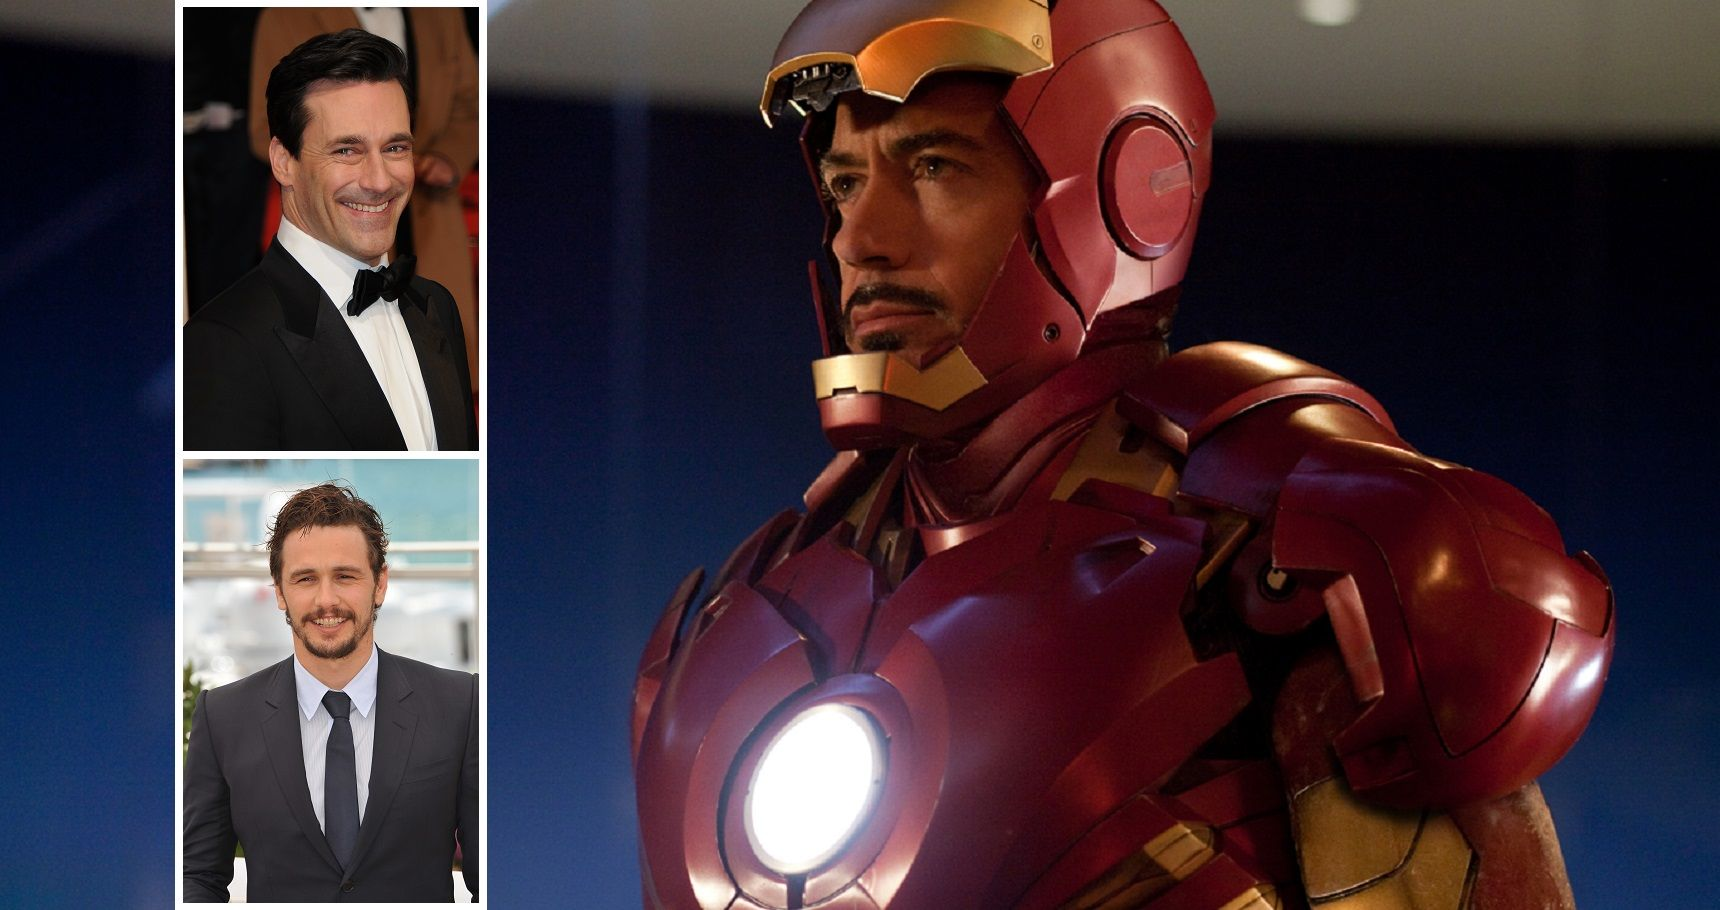 Iron Man Cast 1978 2008 2010 2012 2013 2015 2016